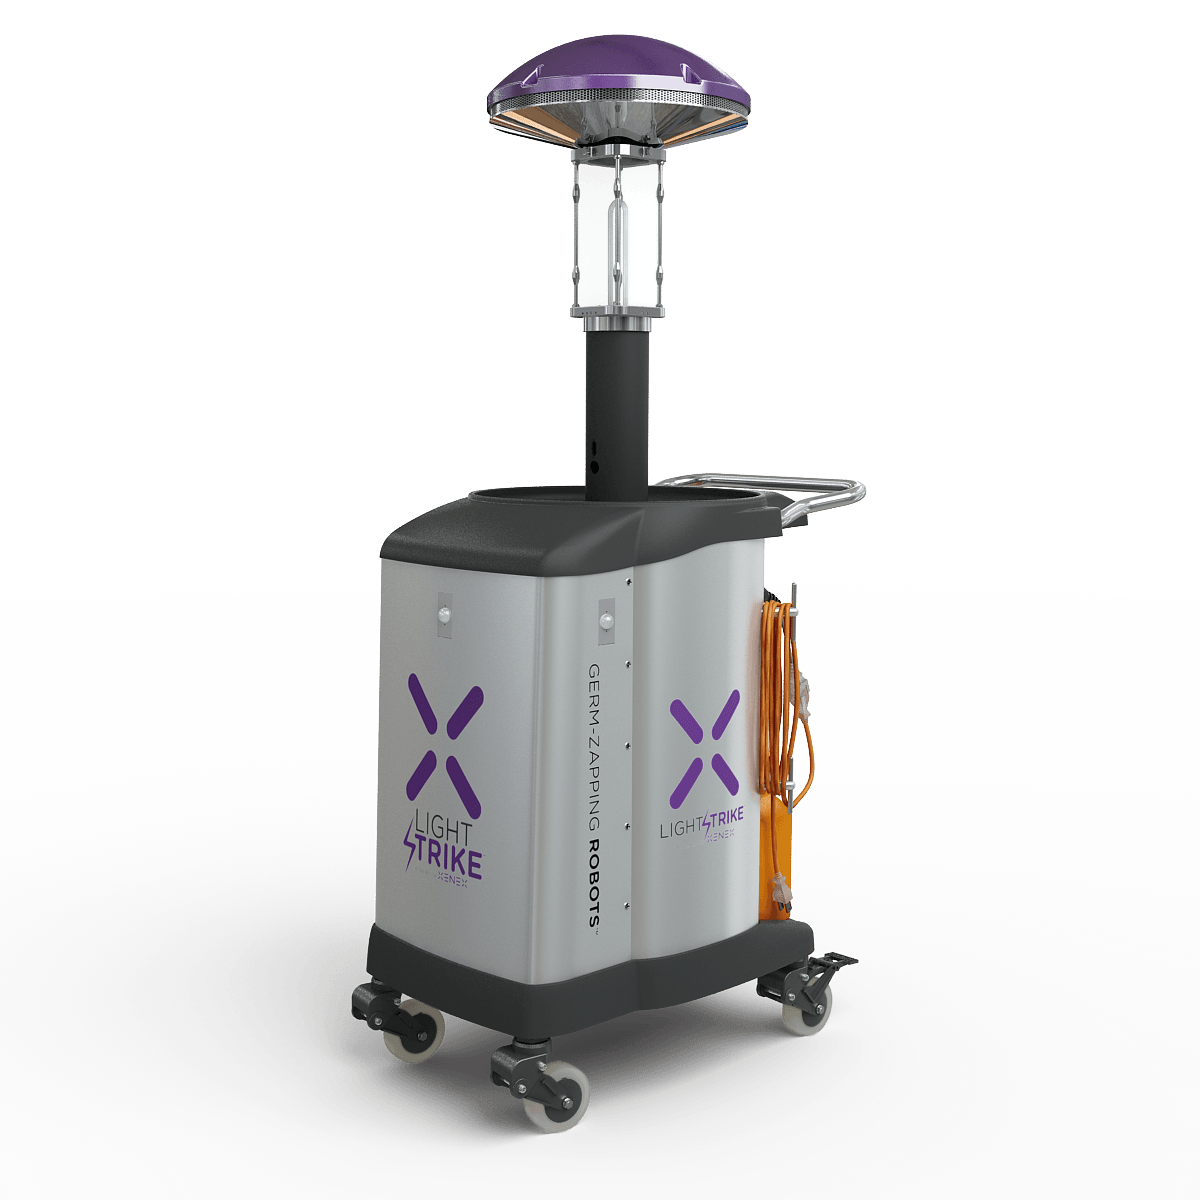 Disinfection Robot That Destroys COVID-19 Virus in 2 Minutes Launches in Texas